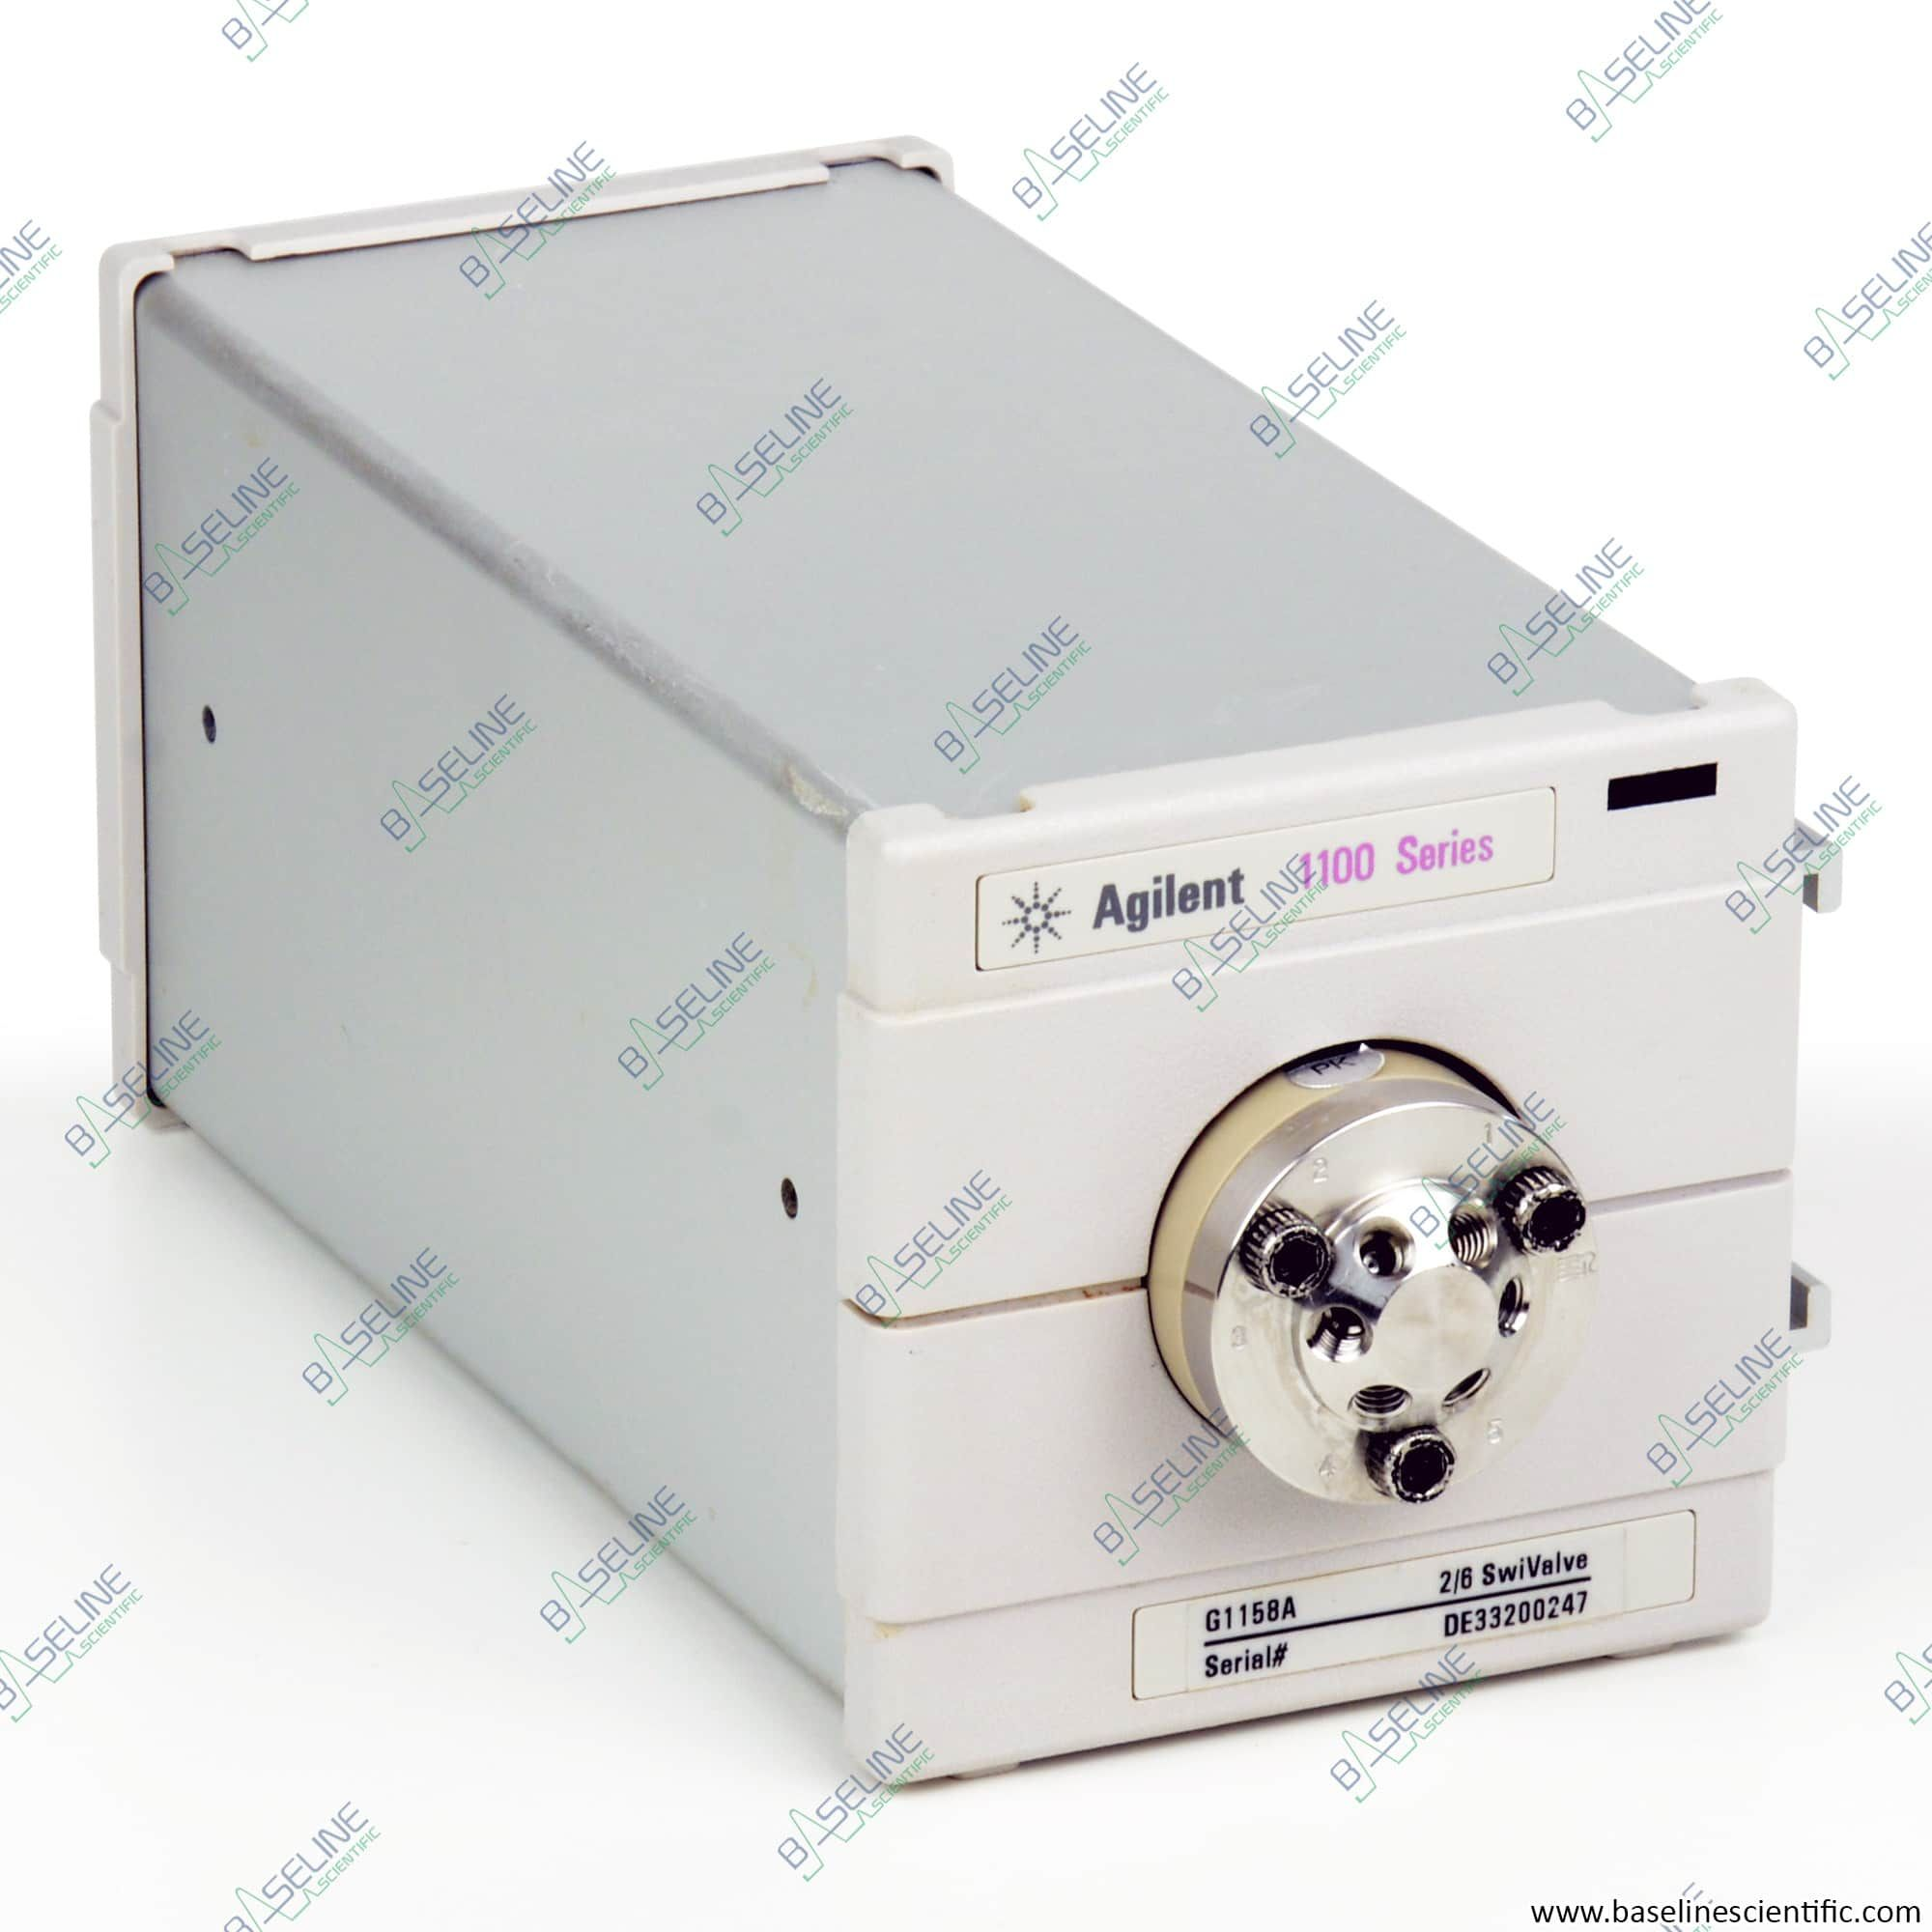 Refurbished Agilent HP 1100 G1158A 2 Position 6 Port Valve with ONE YEAR WARRANTY